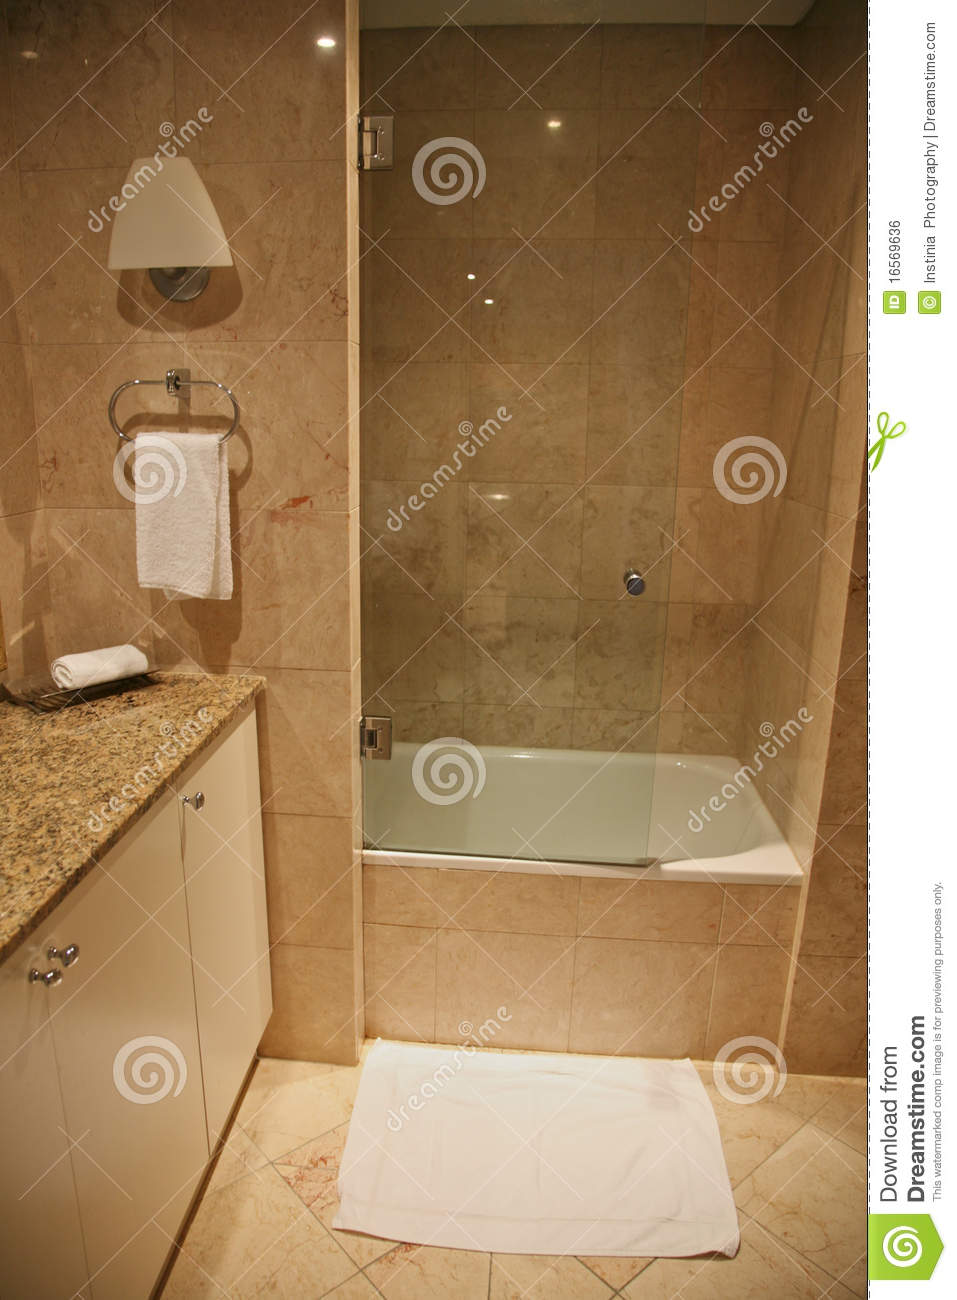 toliet in bathroom made in marble stock photo image of cylindrical